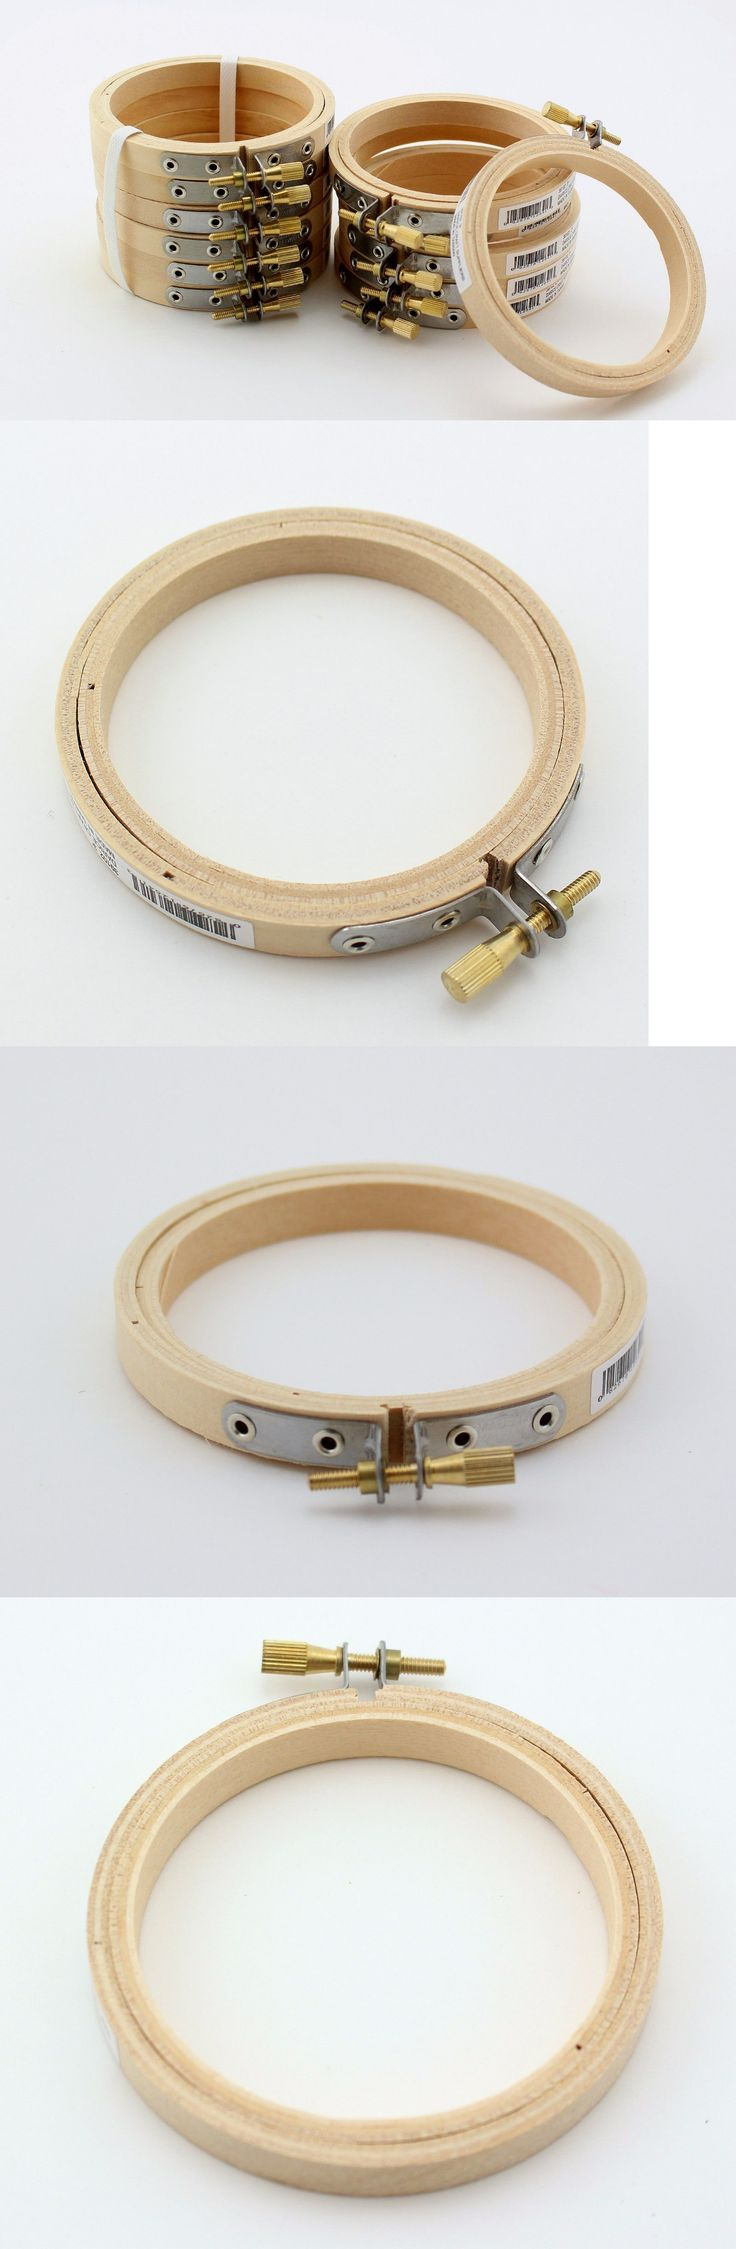 Small Round Wooden Embroidery Hoops 4 Inch Bulk Wholesale 12 Pieces